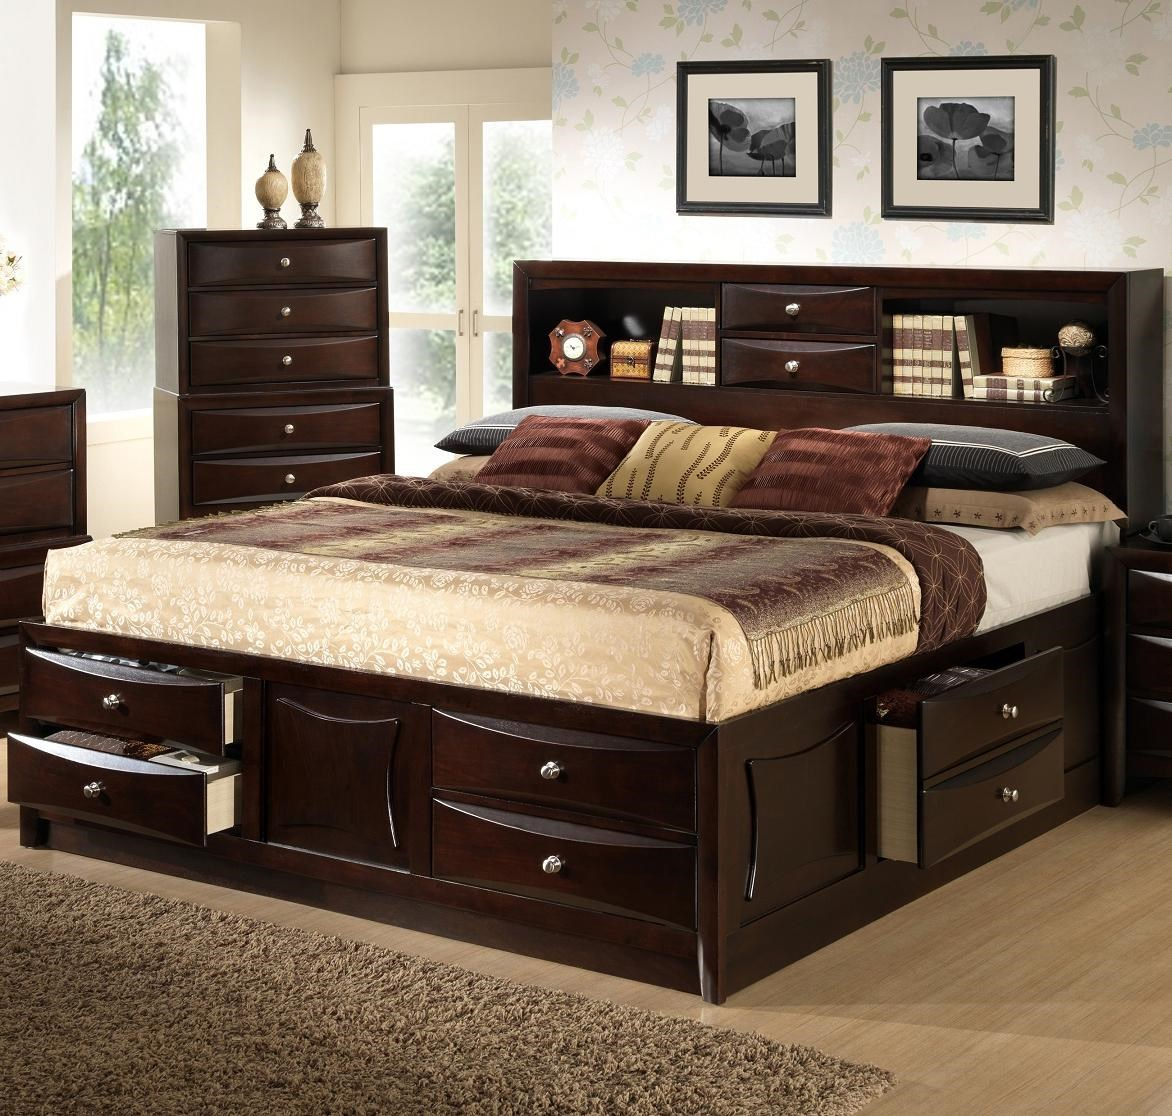 king storage bed frame. Lifestyle ToddKing/ California King Storage Bed King Storage Bed Frame